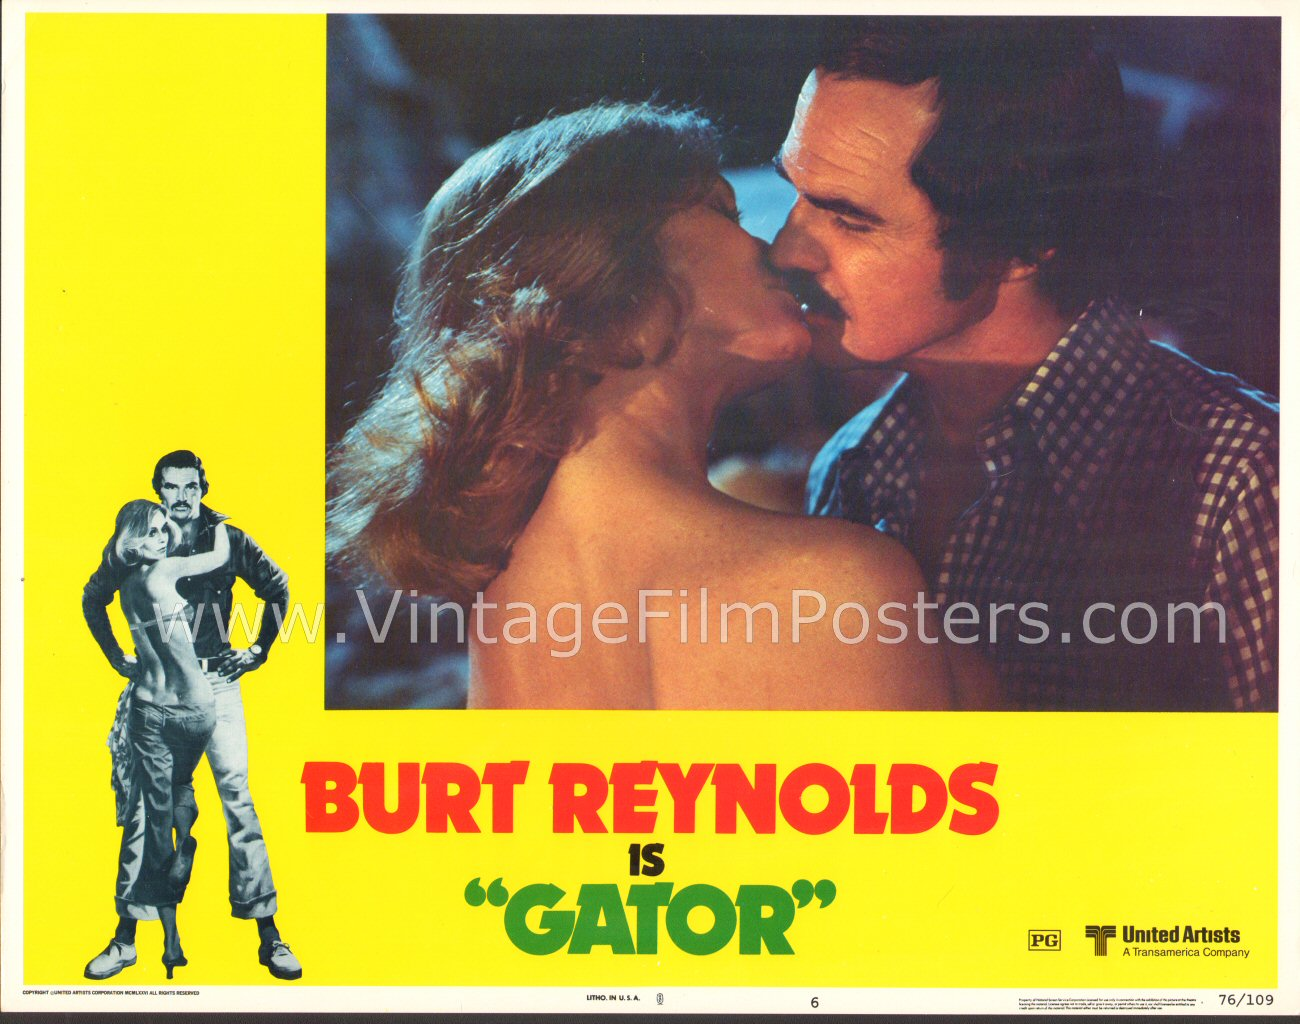 Reynolds movie posters